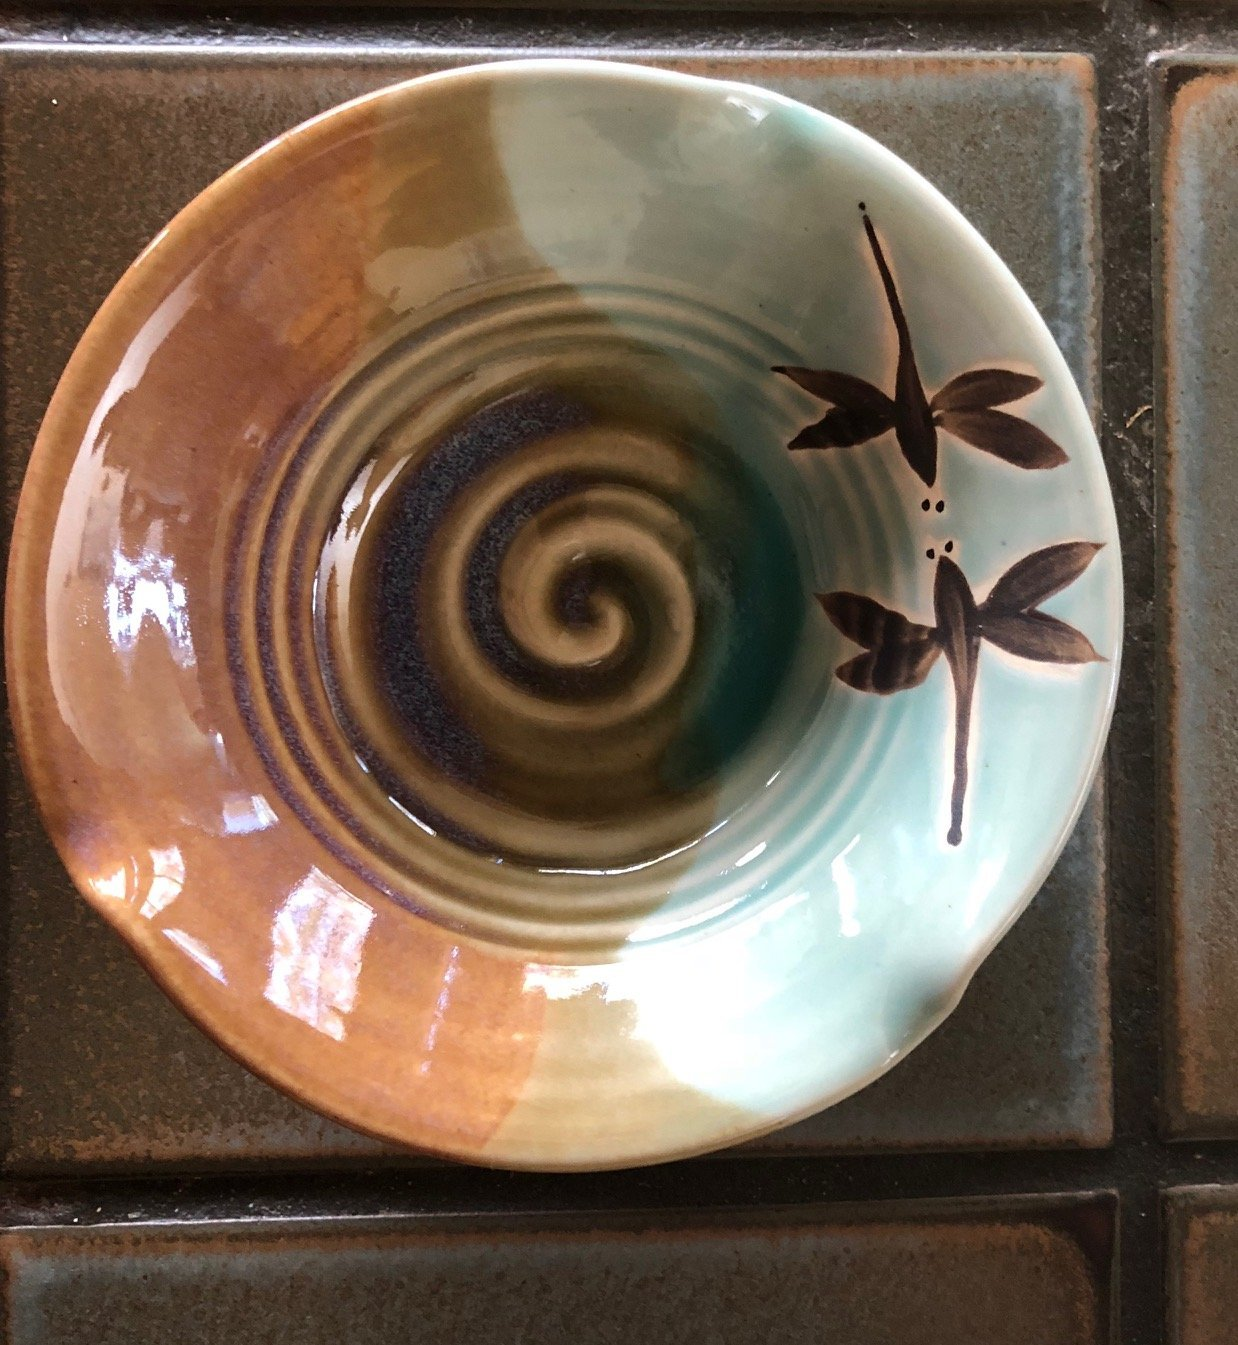 Pottery Handmade Dragonfly Bowl, Ceramic Dragonfly Dish